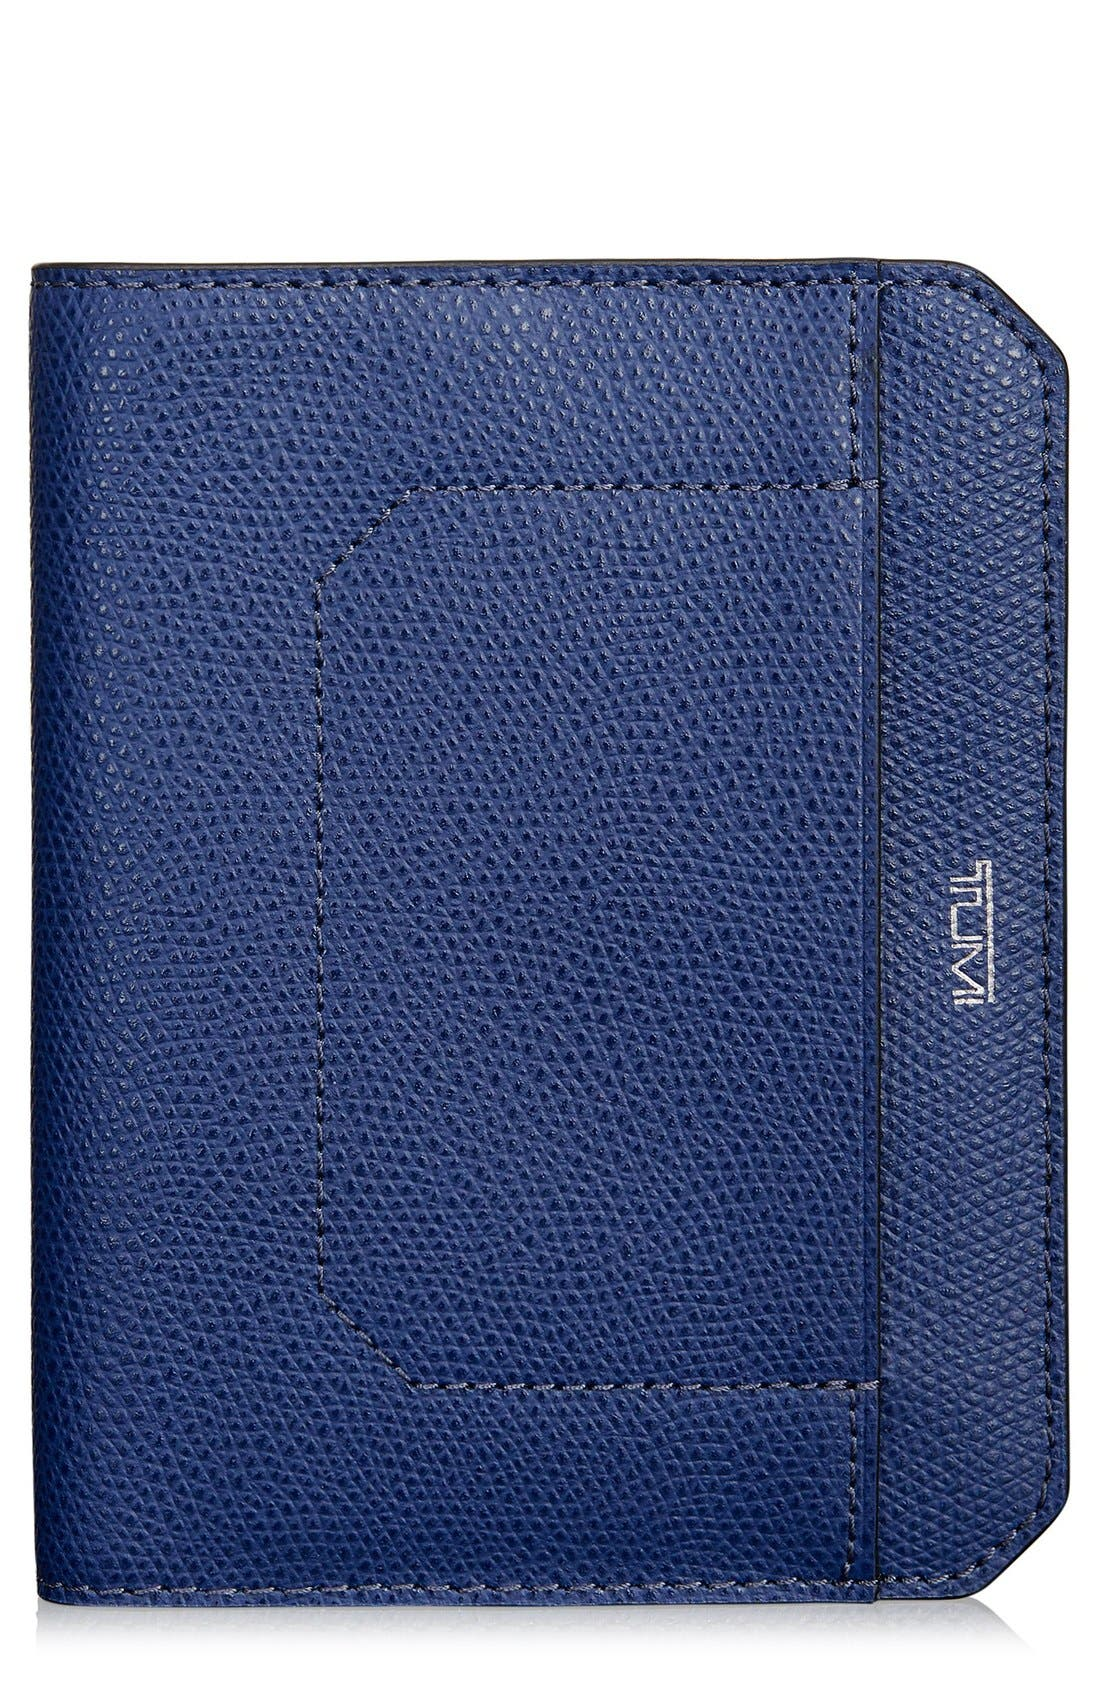 Leather Passport Cover,                             Main thumbnail 1, color,                             400